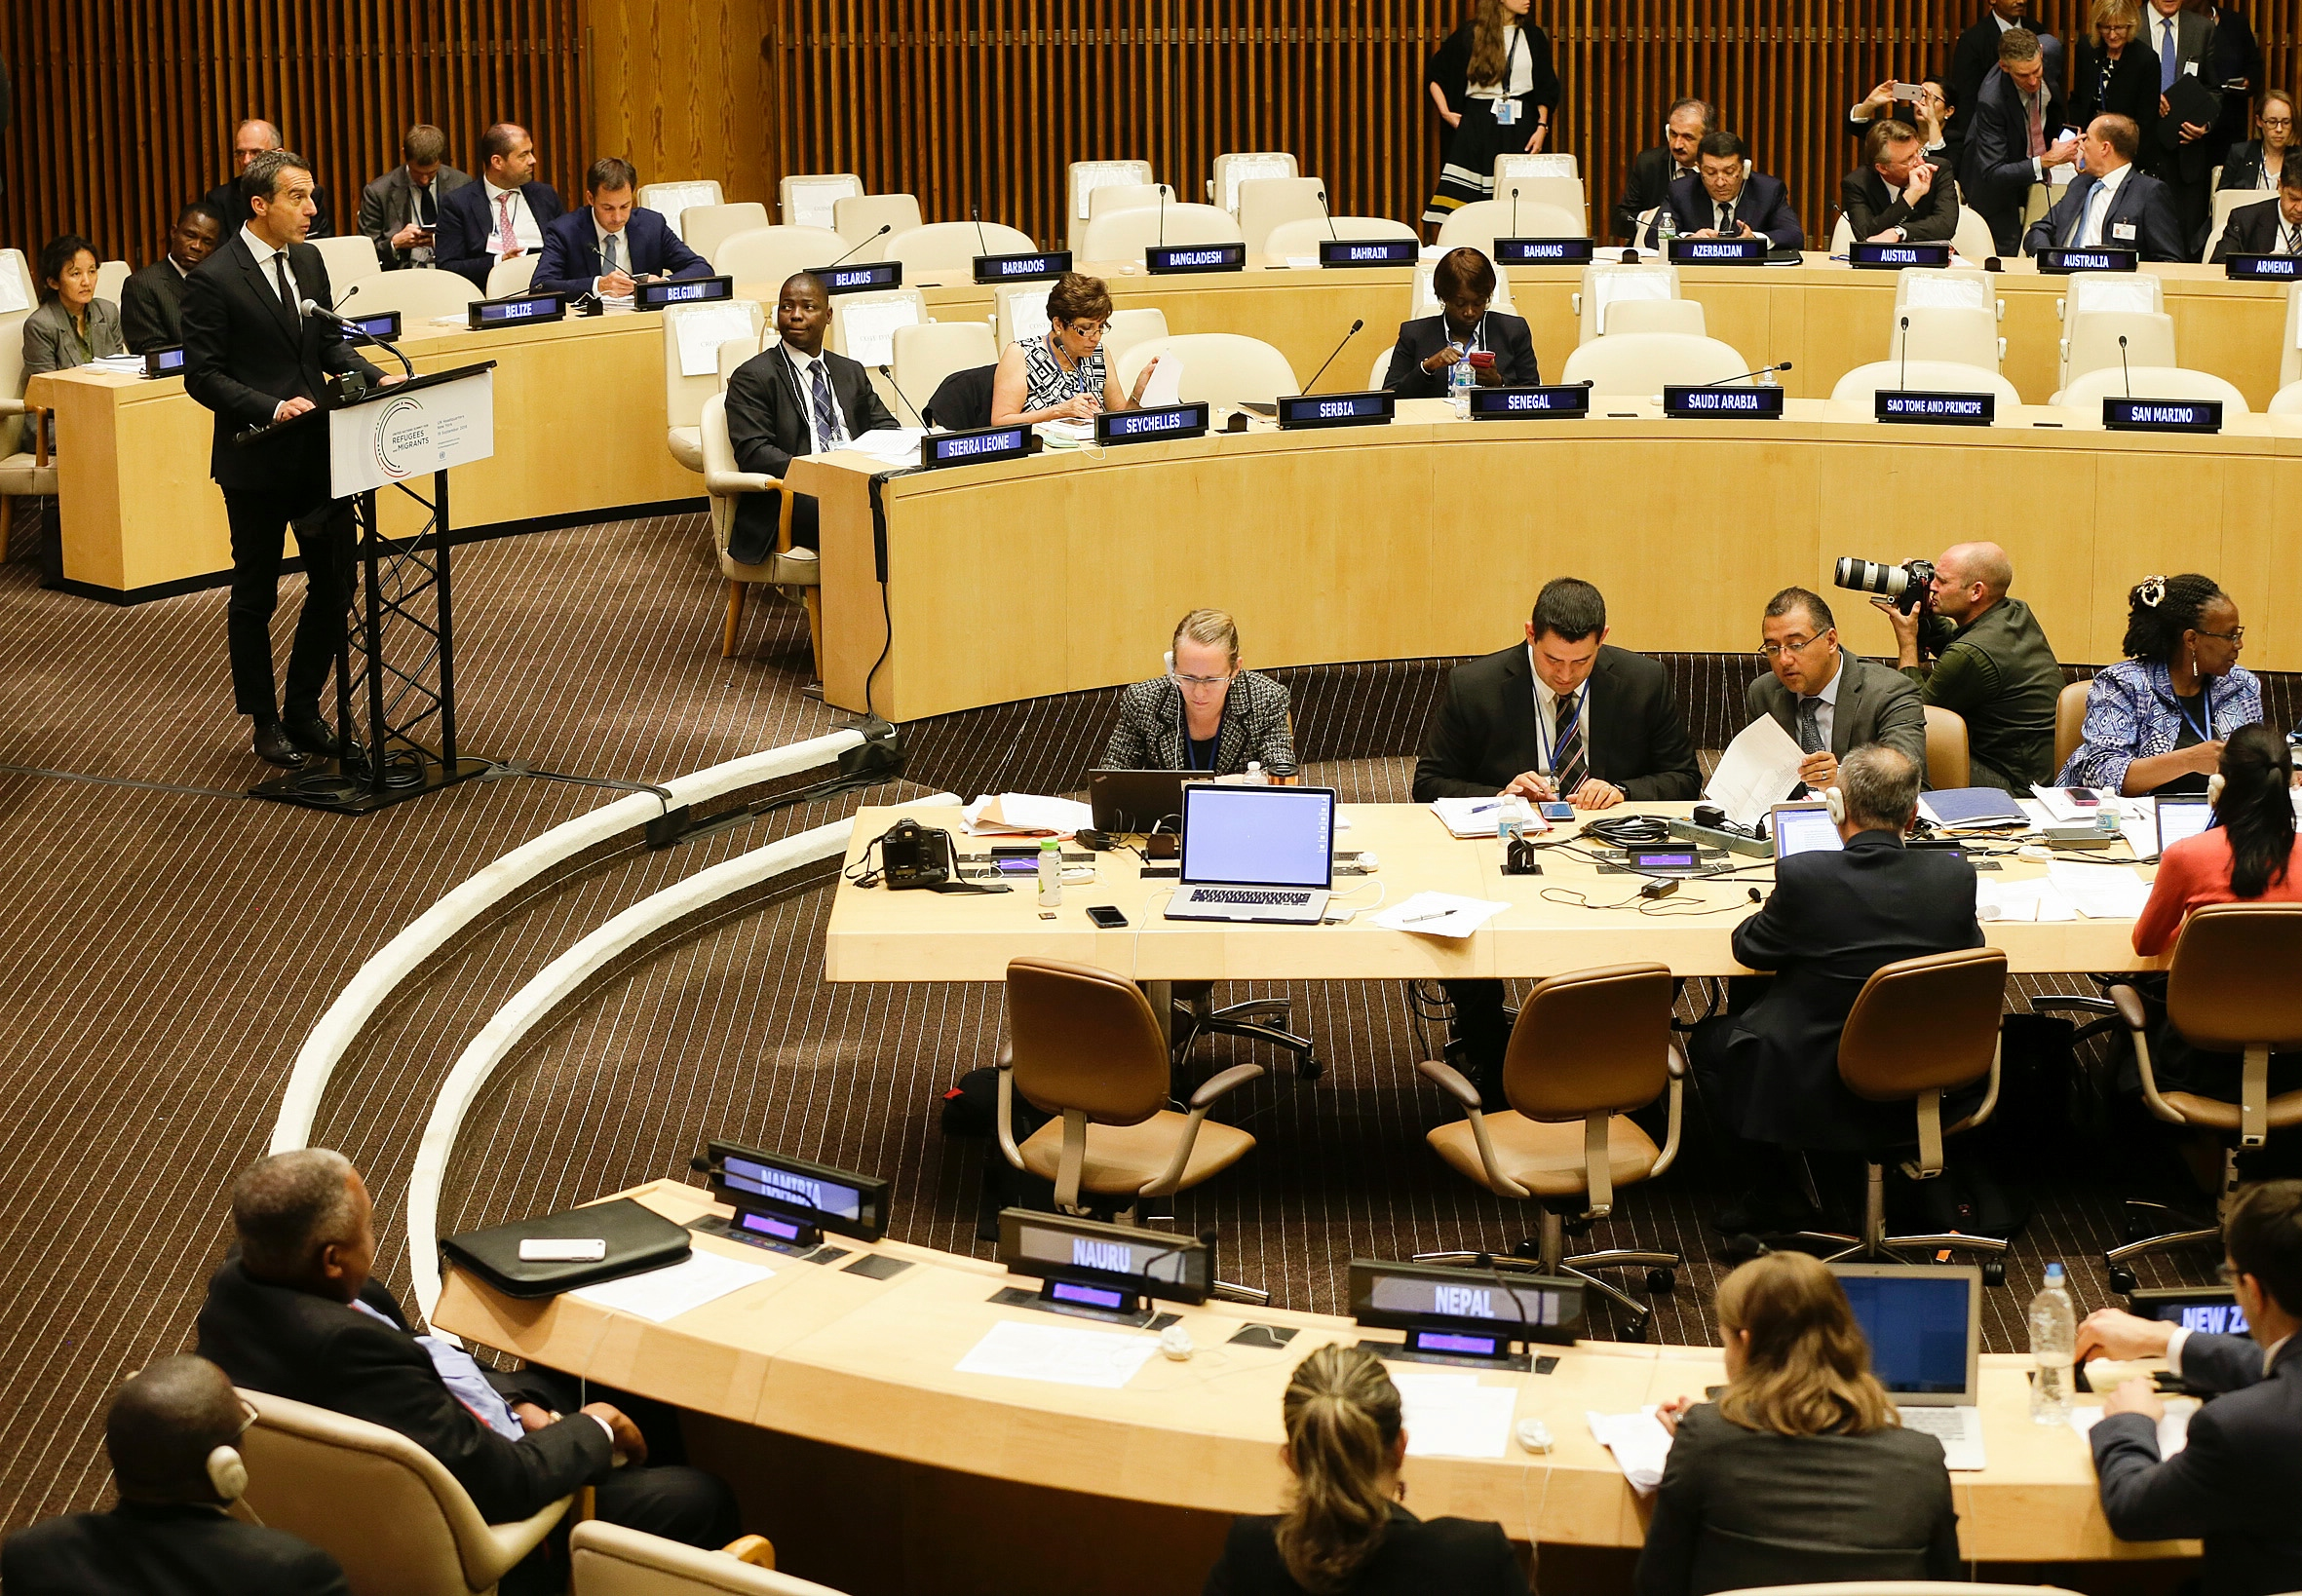 Chancellor Kern speaking at high-level meeting on migration and refugees. Photo: BKA/Andy Wenzel